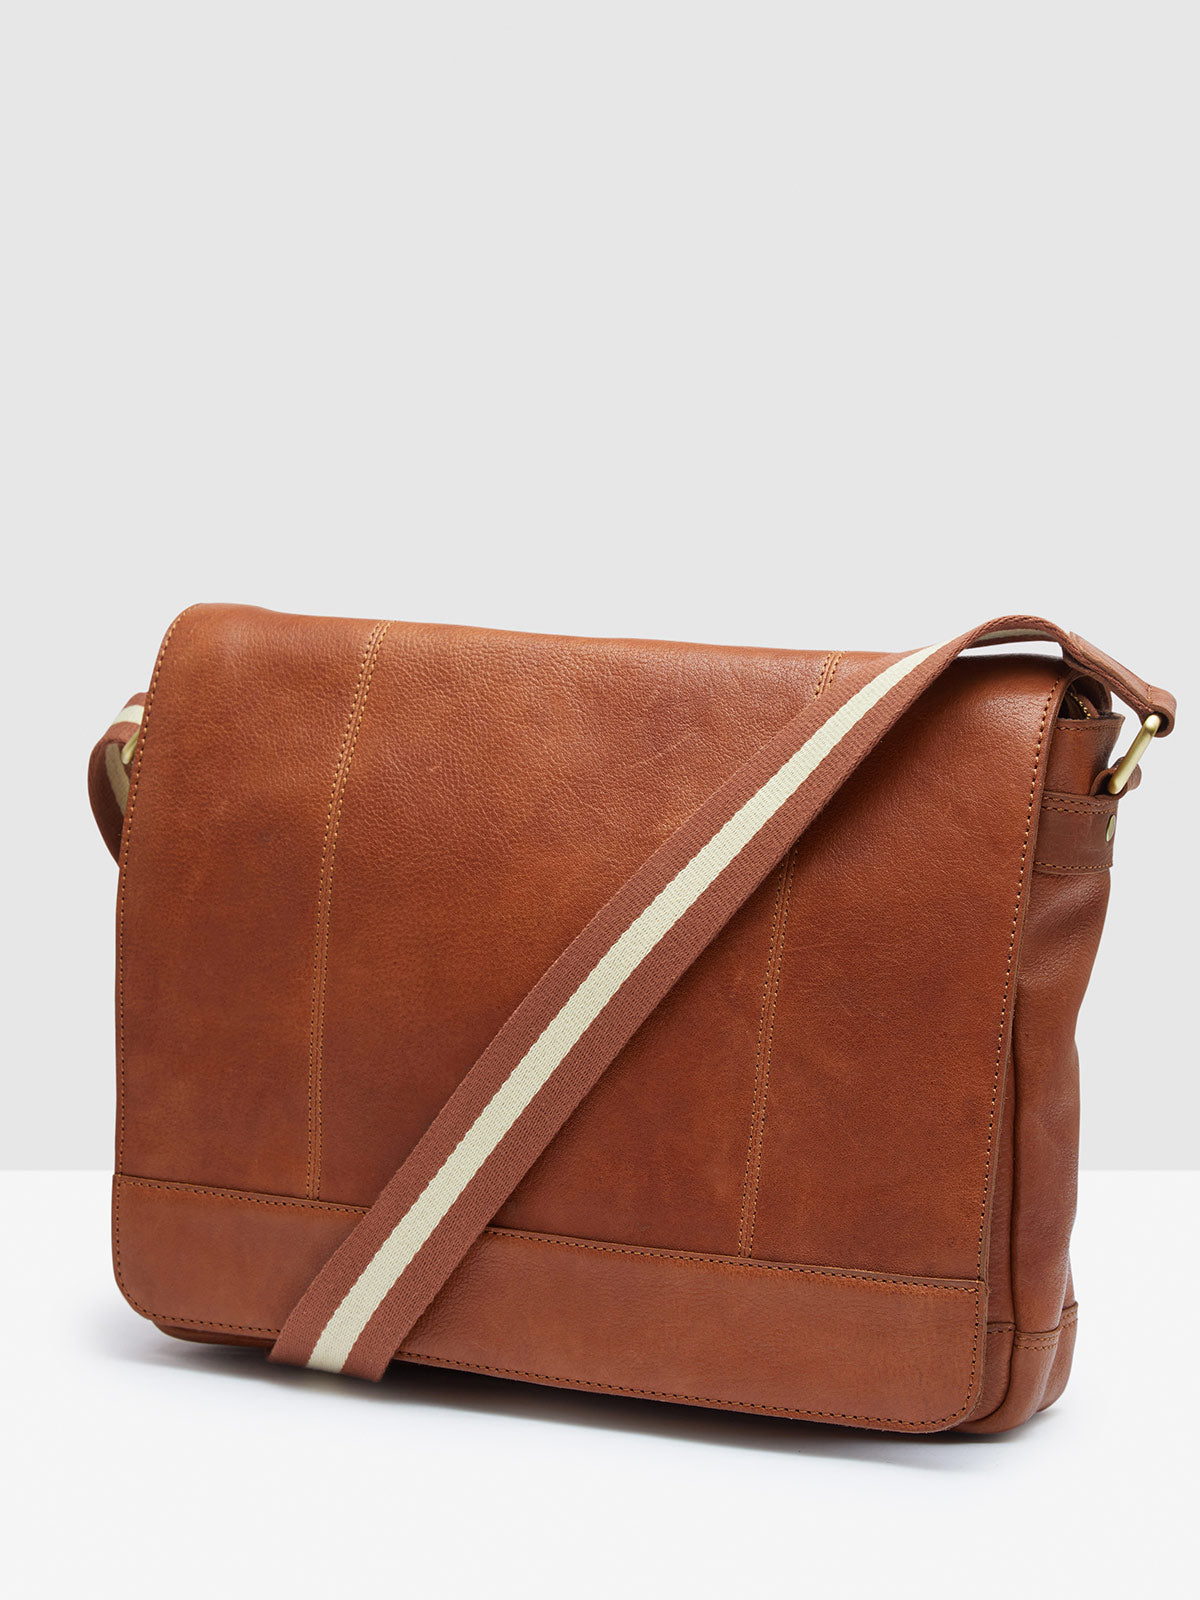 JAMESON SMALL MESSENGER BAG VINTAGE NEW TAN